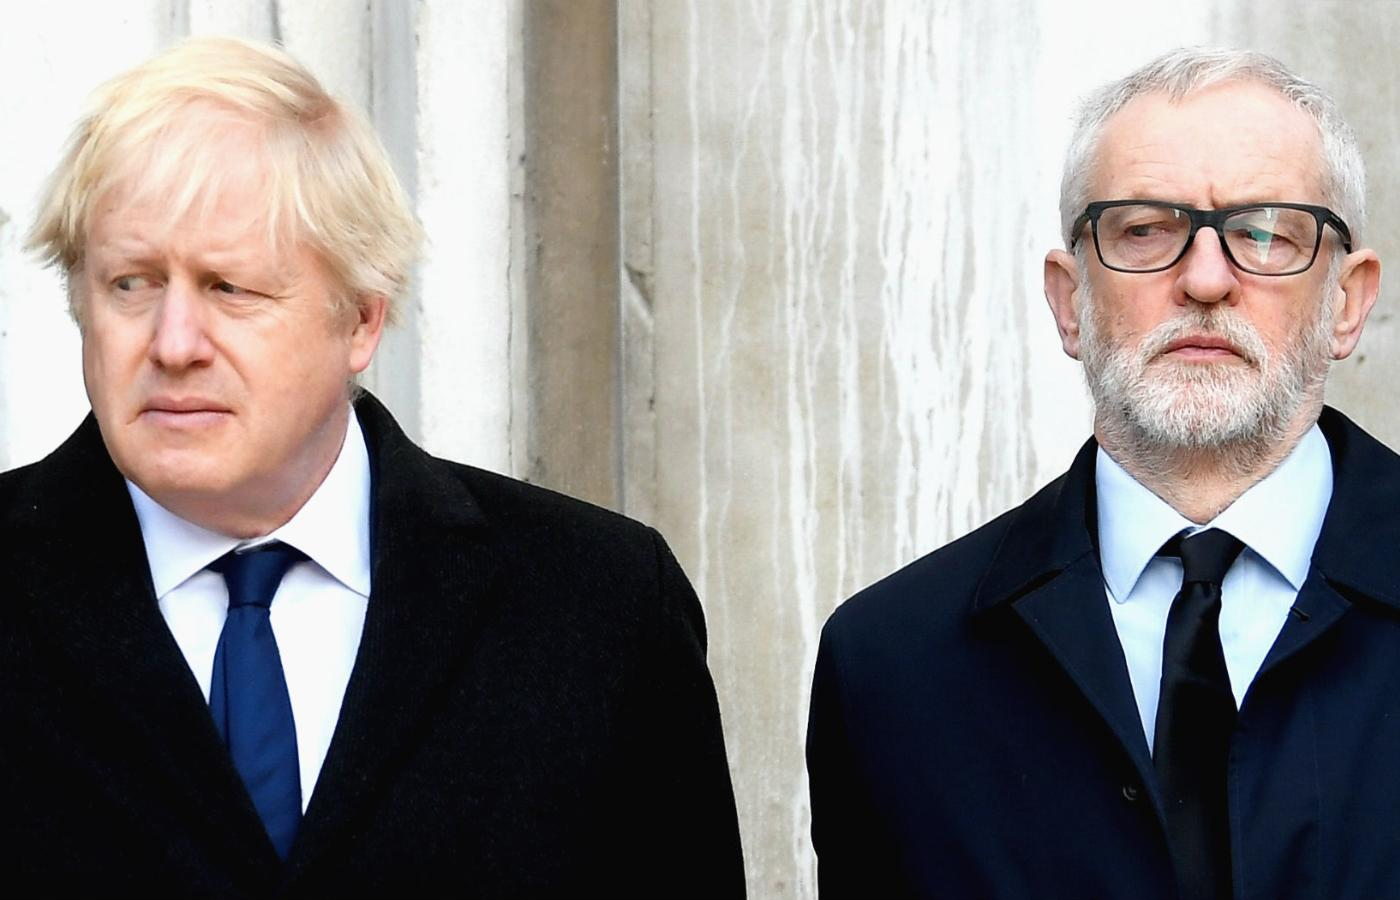 Od lewej: Boris Johnson i Jeremy Corbyn